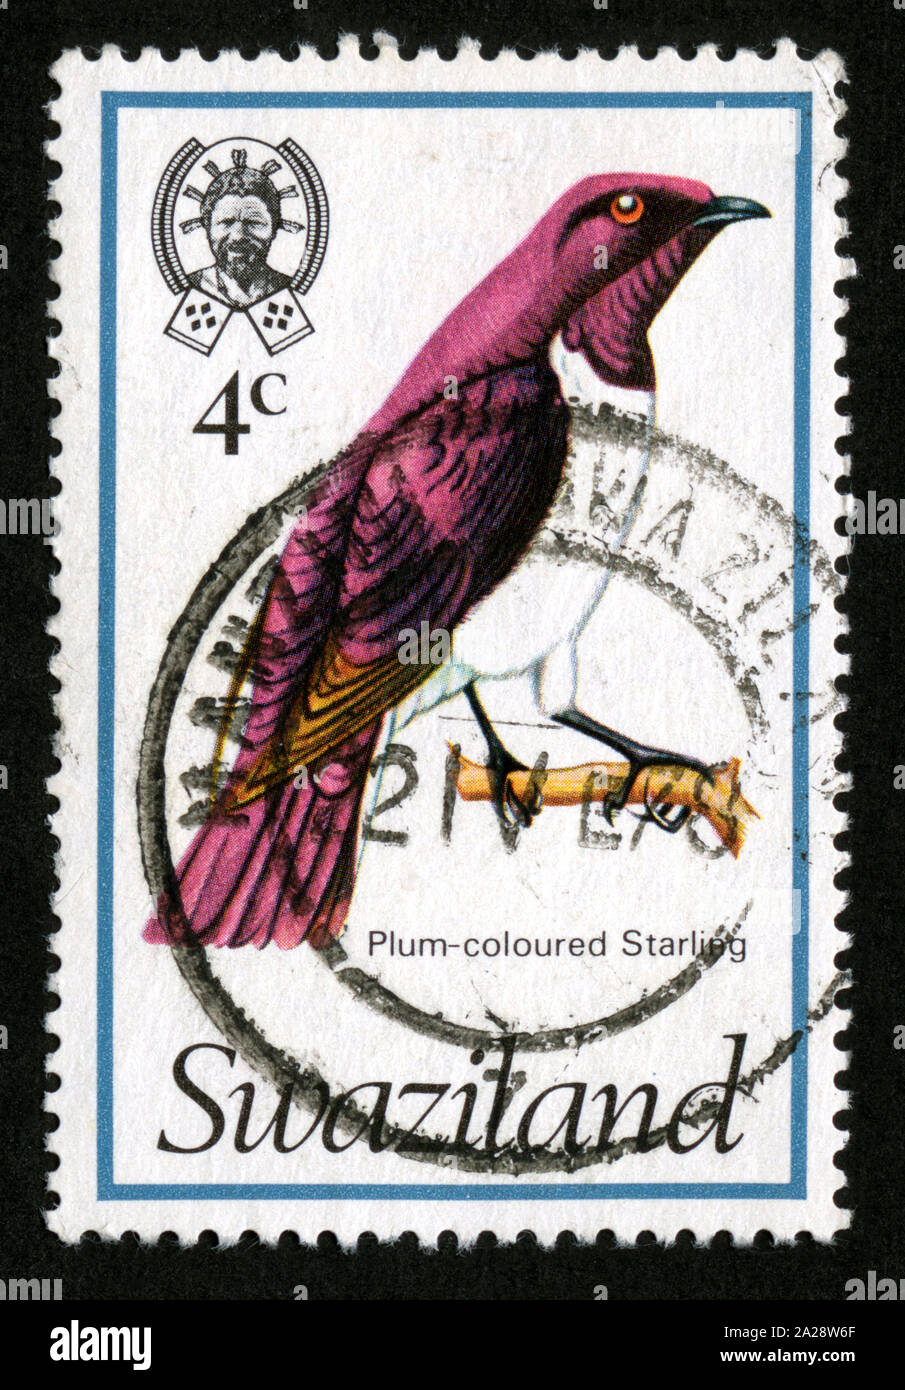 Stamp print in Swaziland, Plum-coloured Starlieg,birds Stock Photo